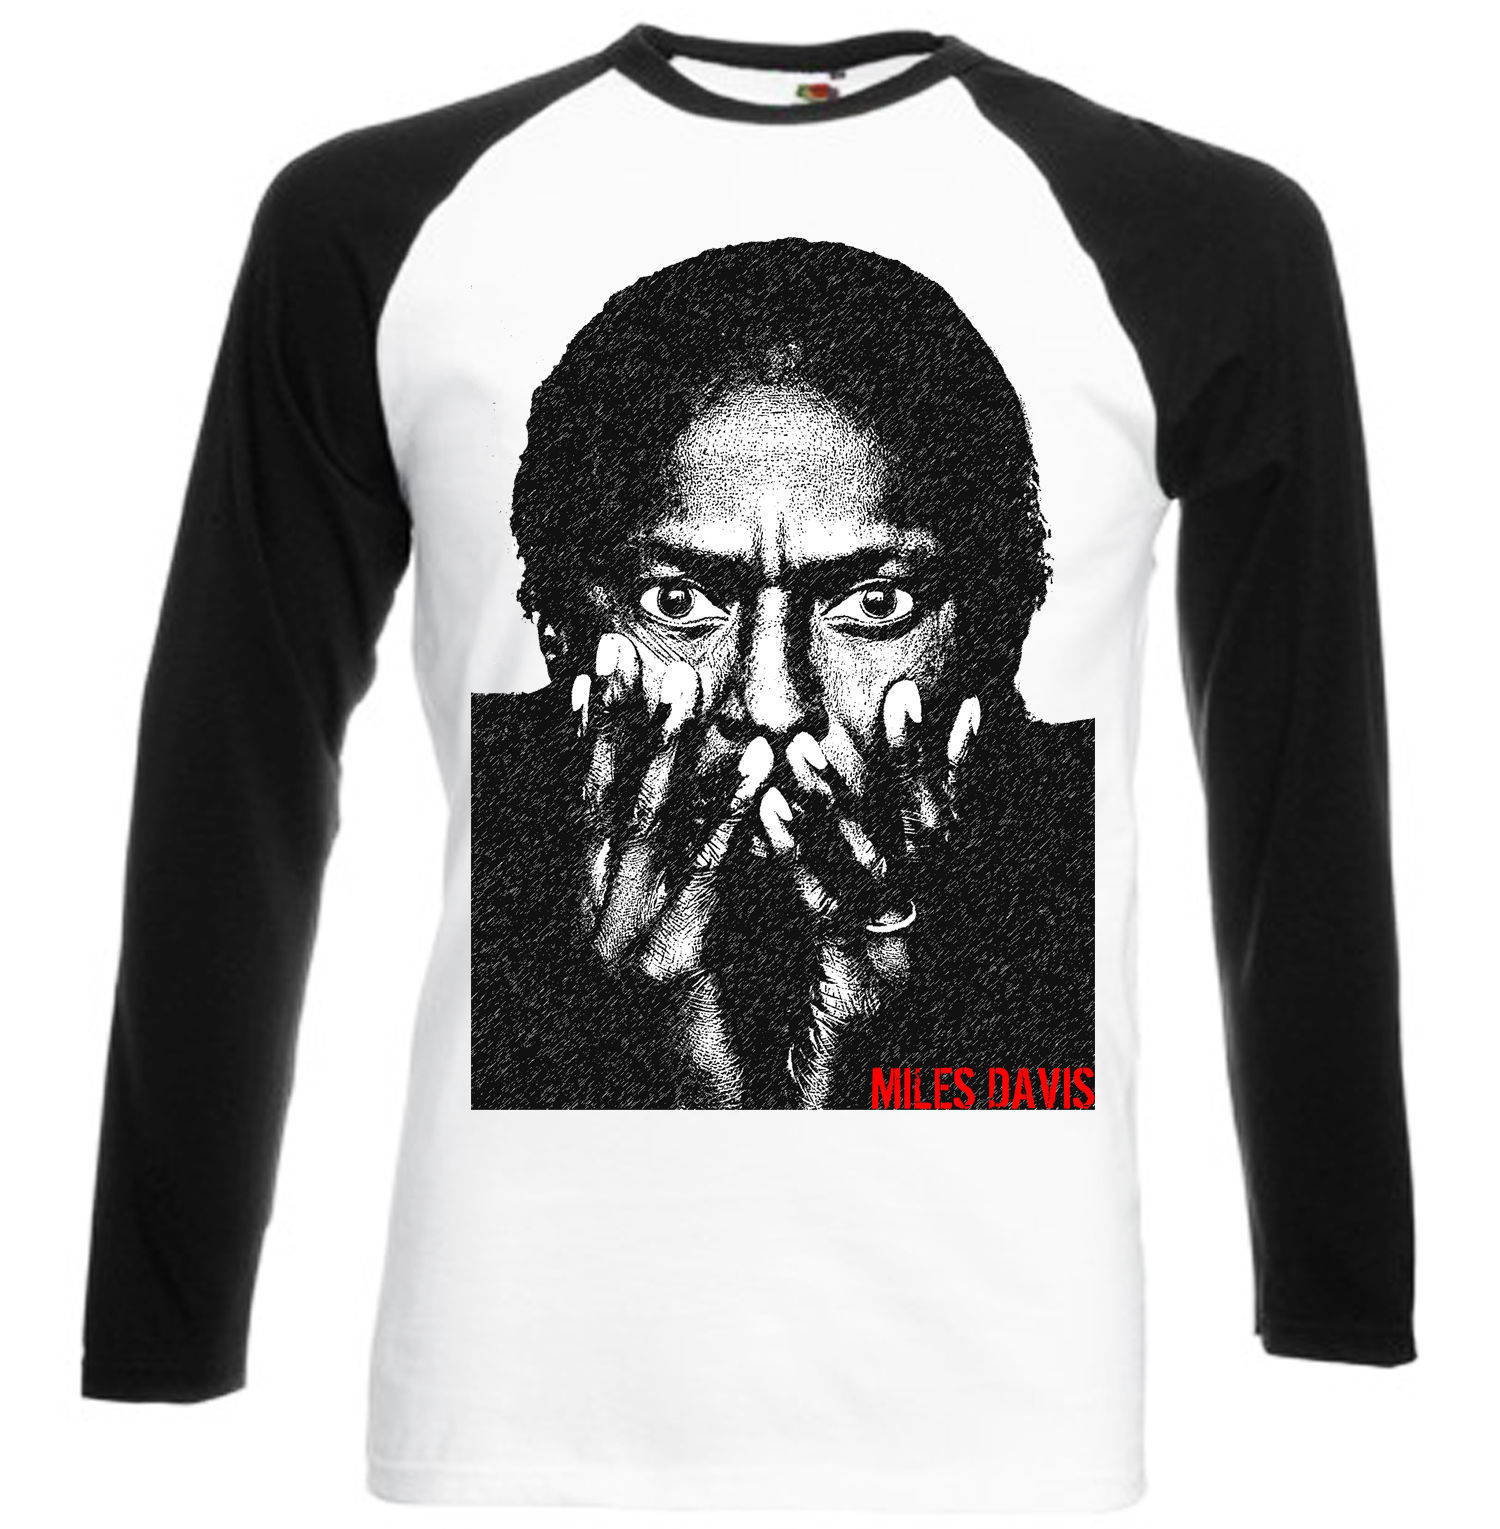 Primary image for DAVIS MILES  NEW  COTTON BLACK SLEEVED BASEBALL T-SHIRT- S-M-L-XL-XXL